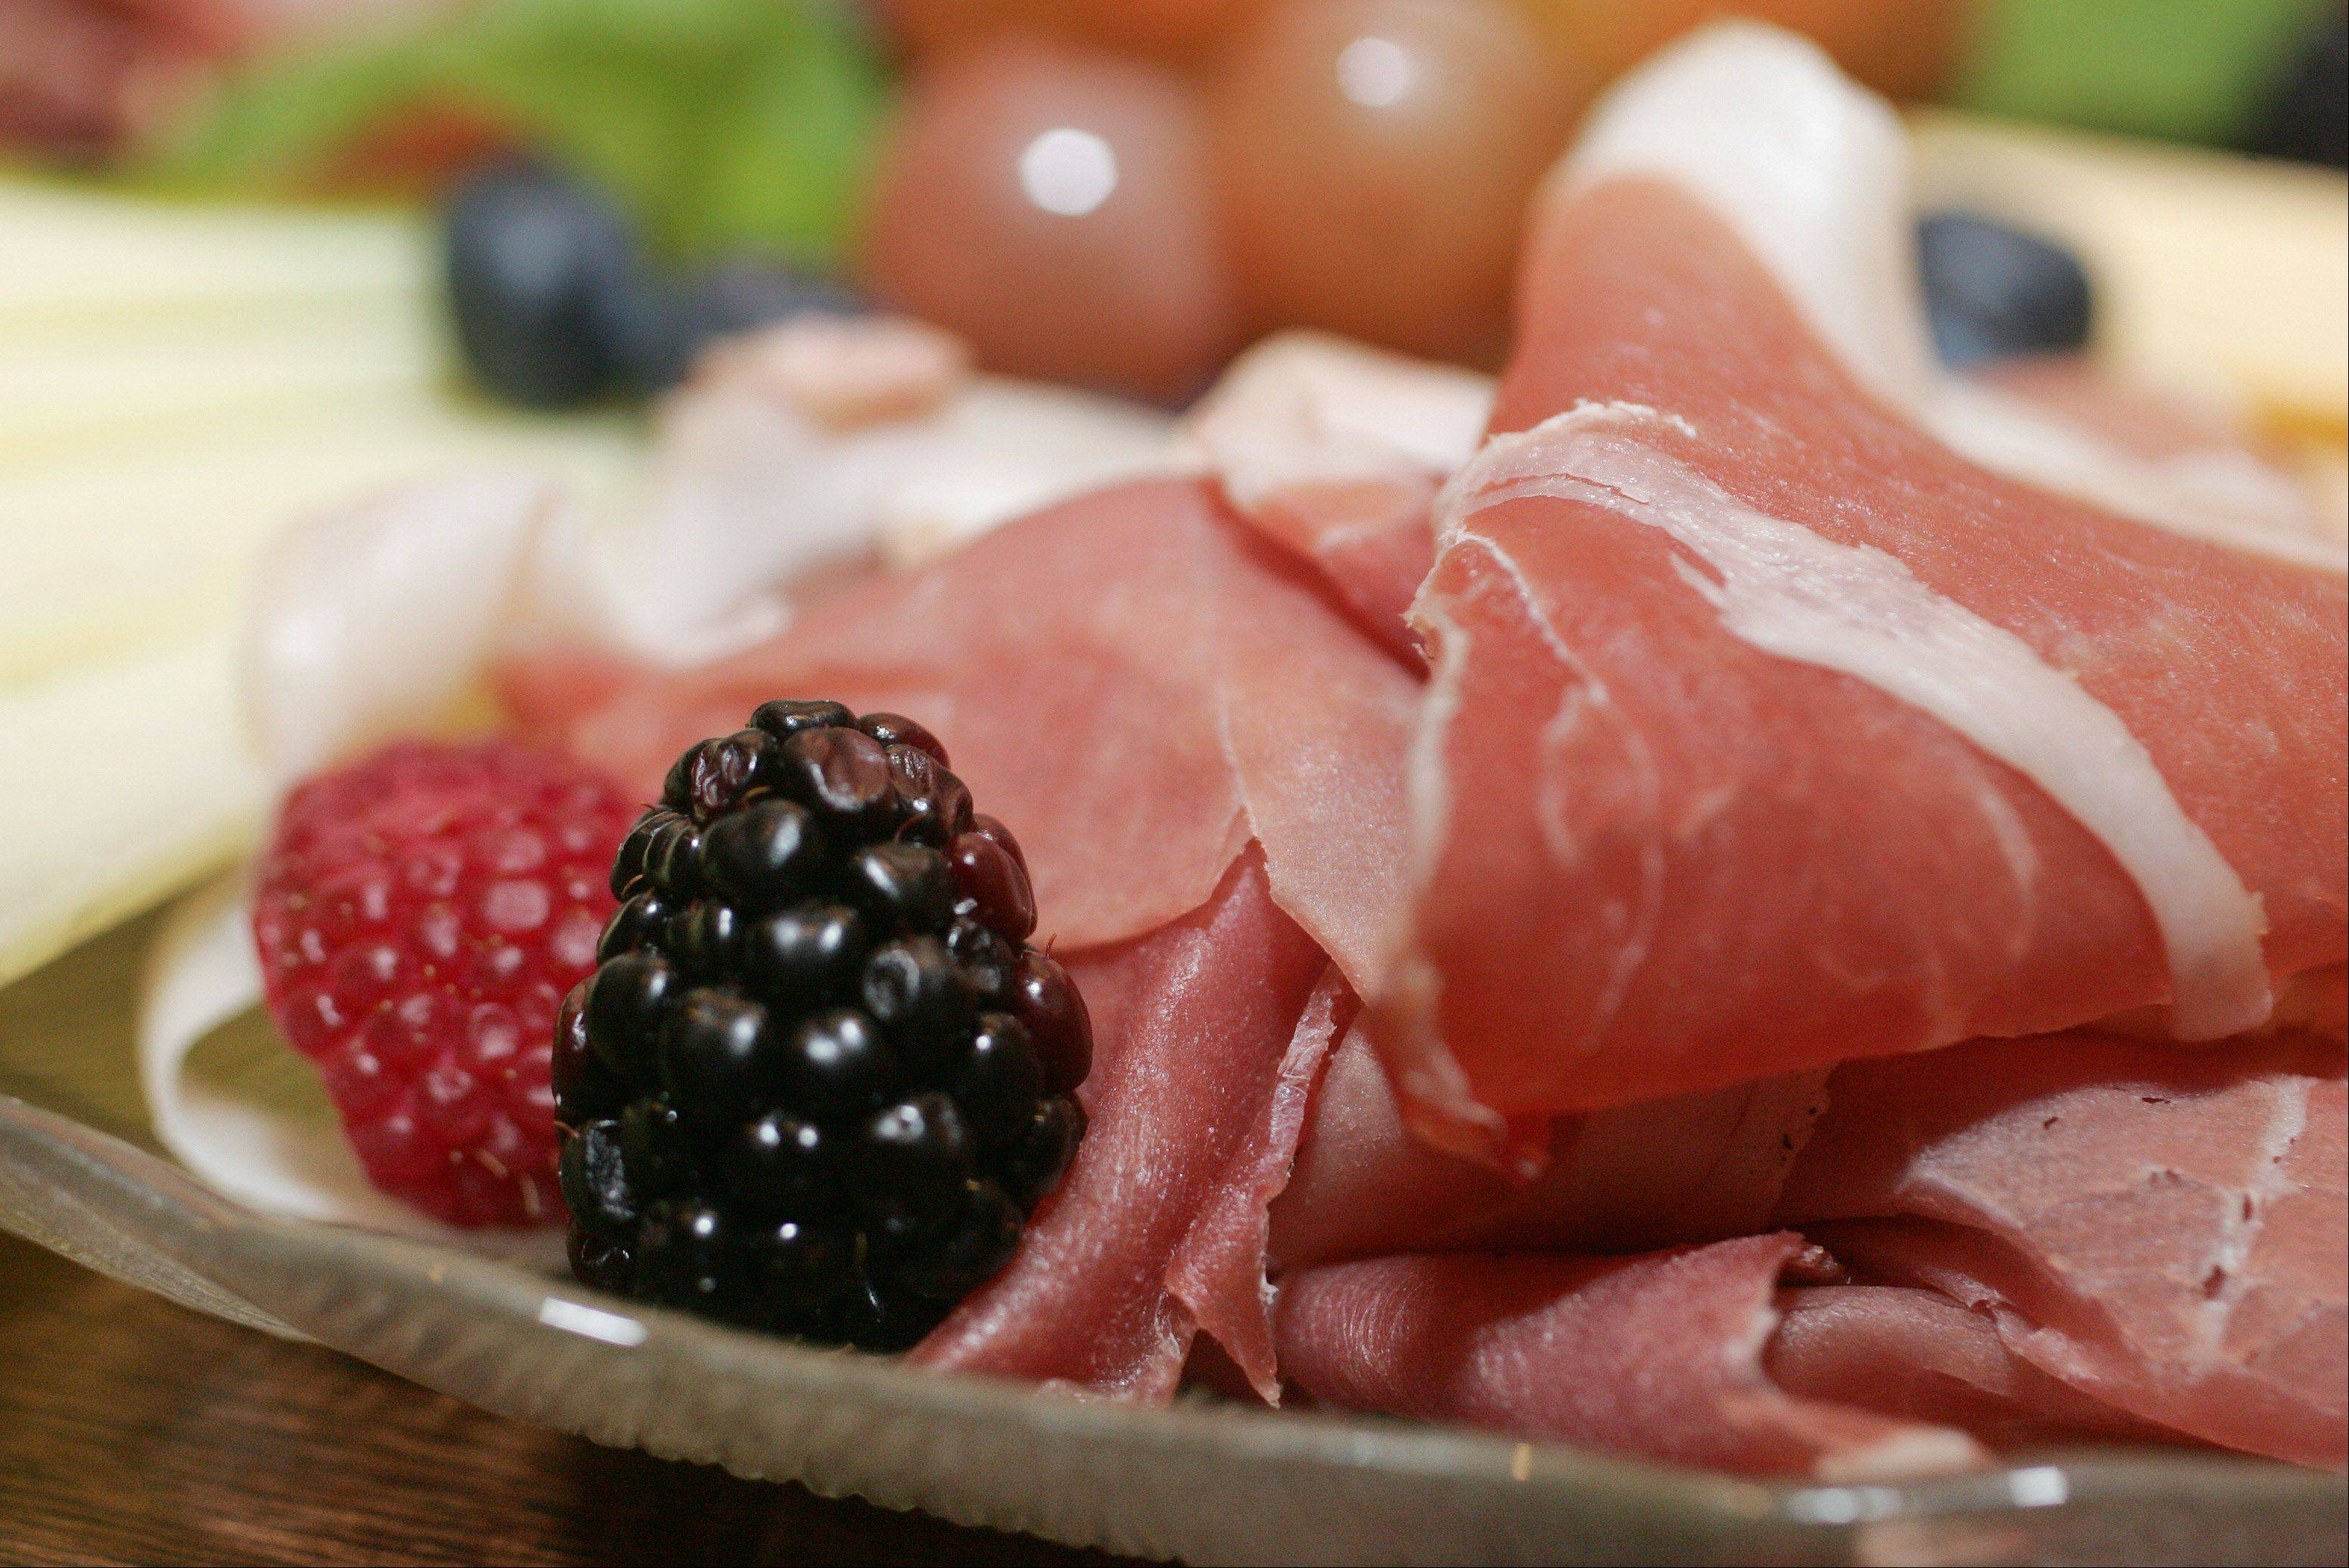 Bodega Grill & Wine Lounge's antipasti mista features prosciutto, serrano ham, salami, mixed cheeses and fruits.